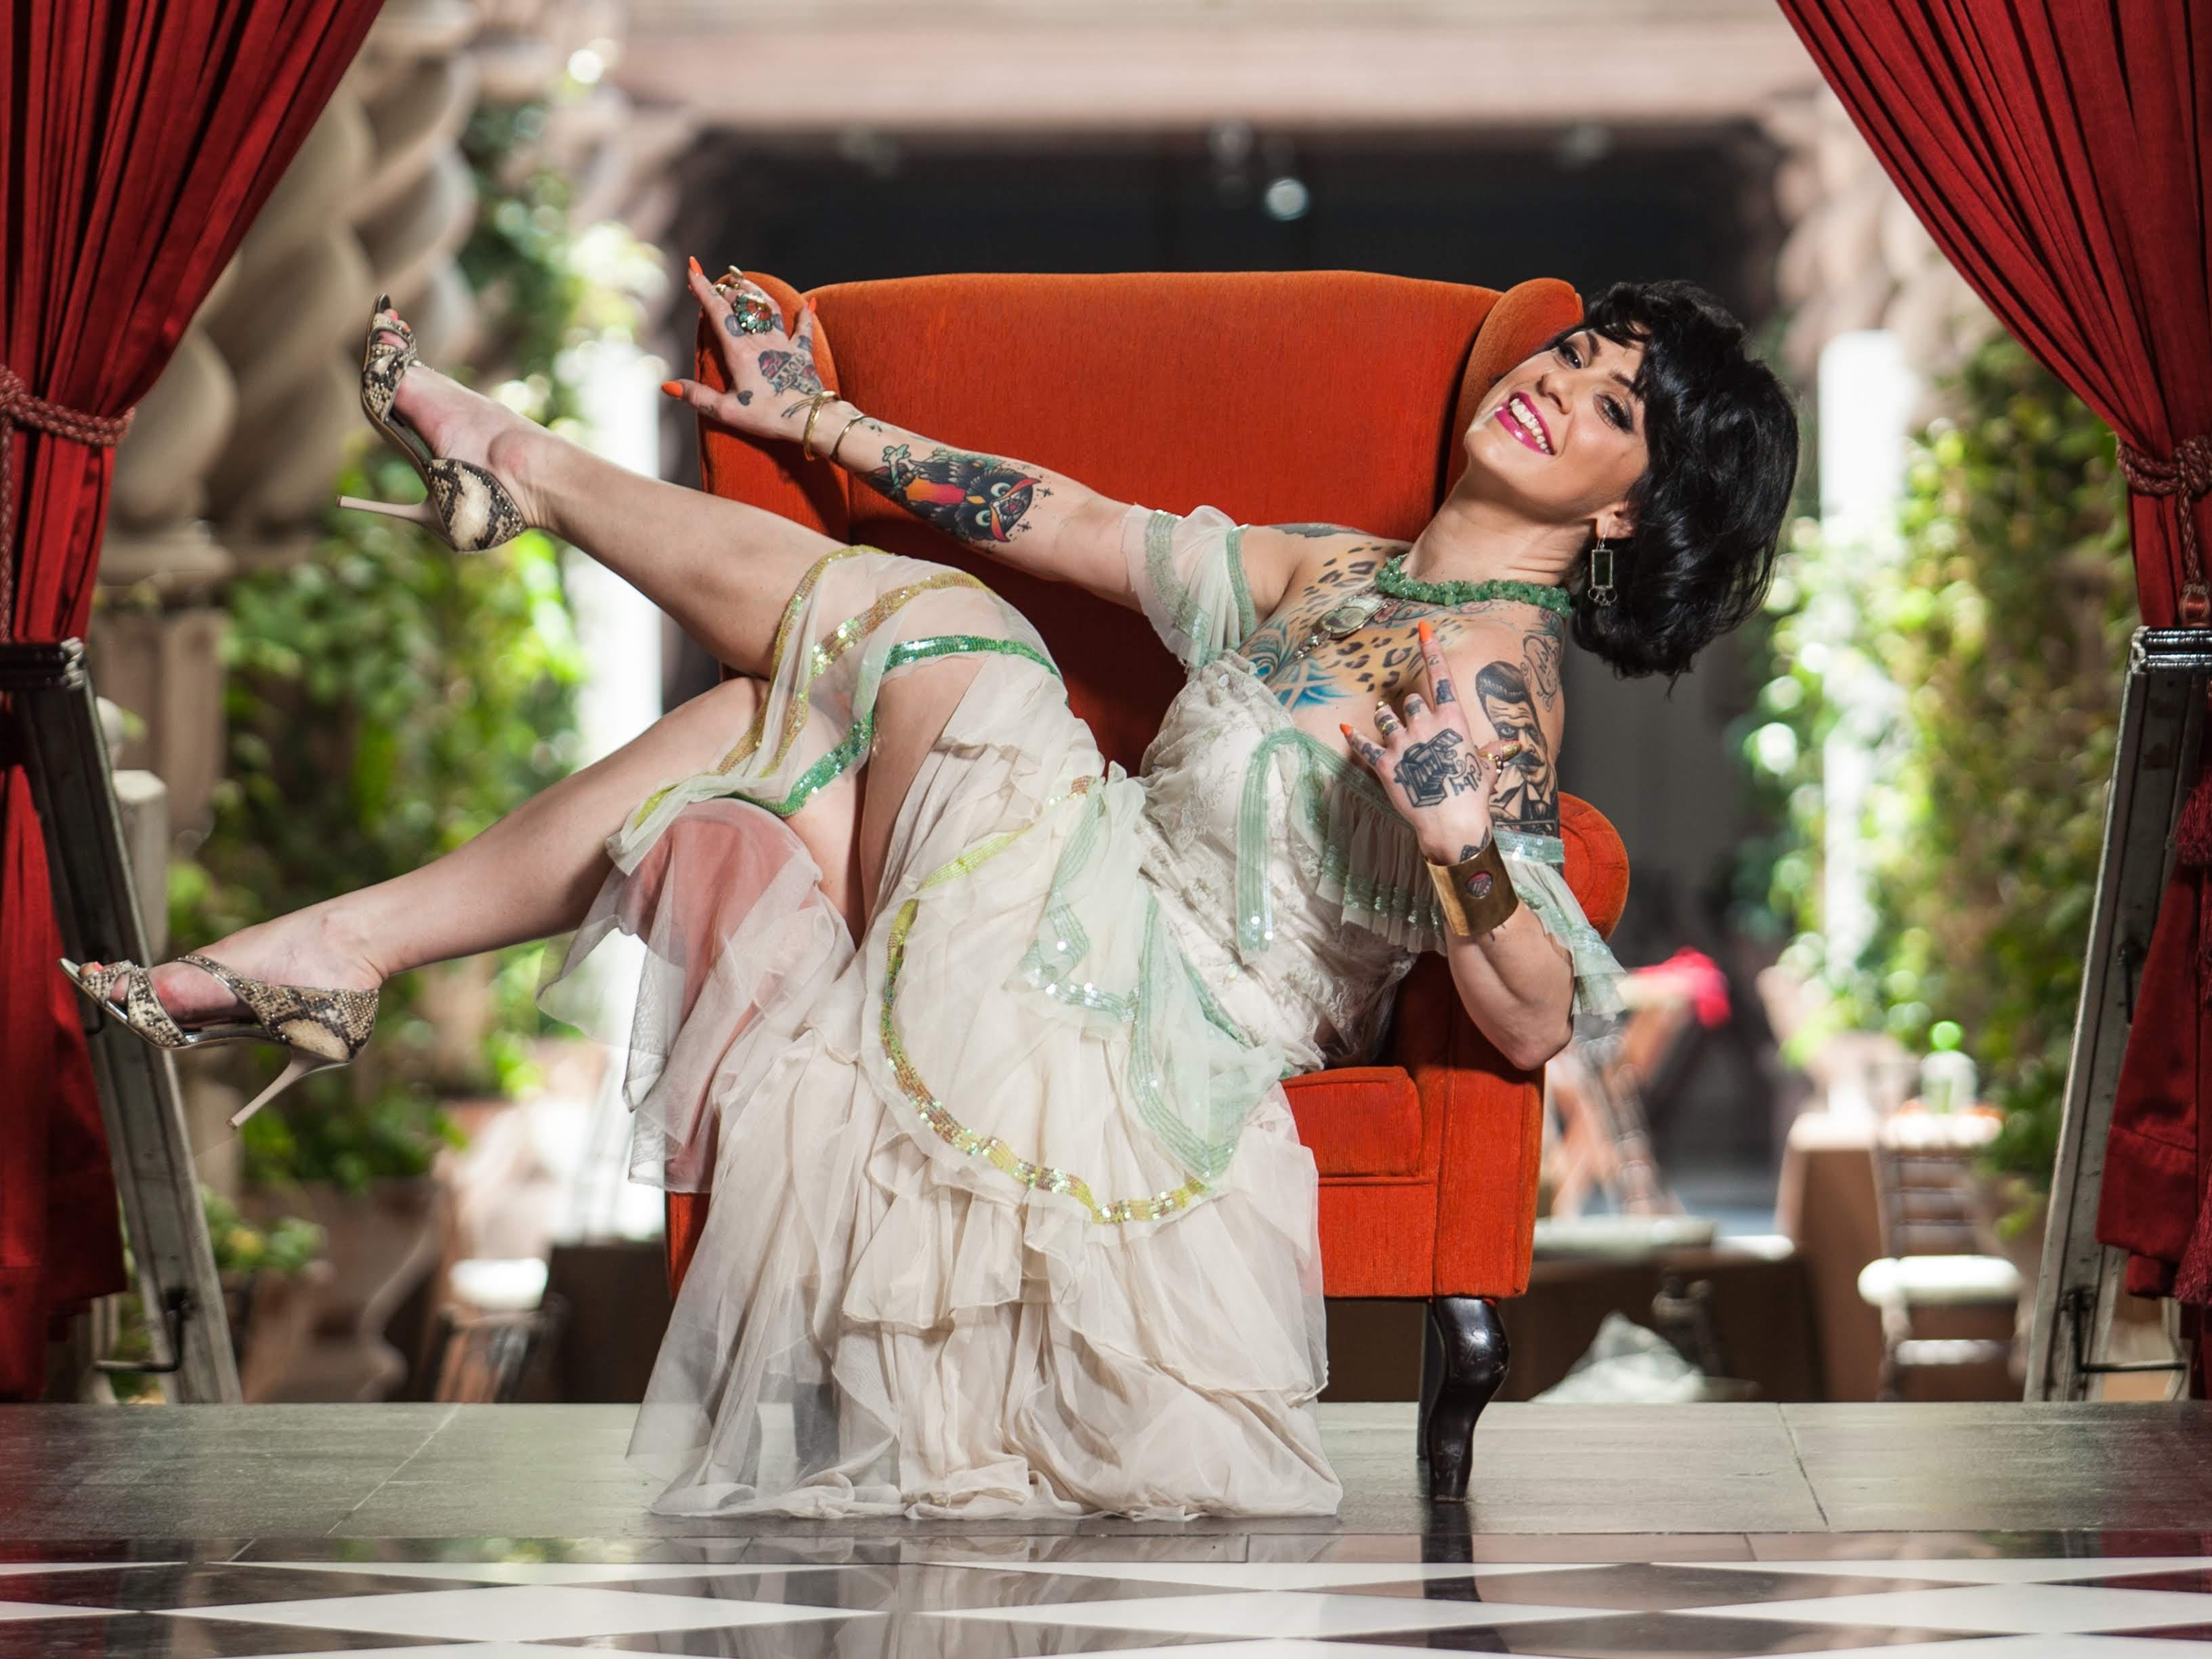 Danielle Colby Burlesque Pickers photo 19